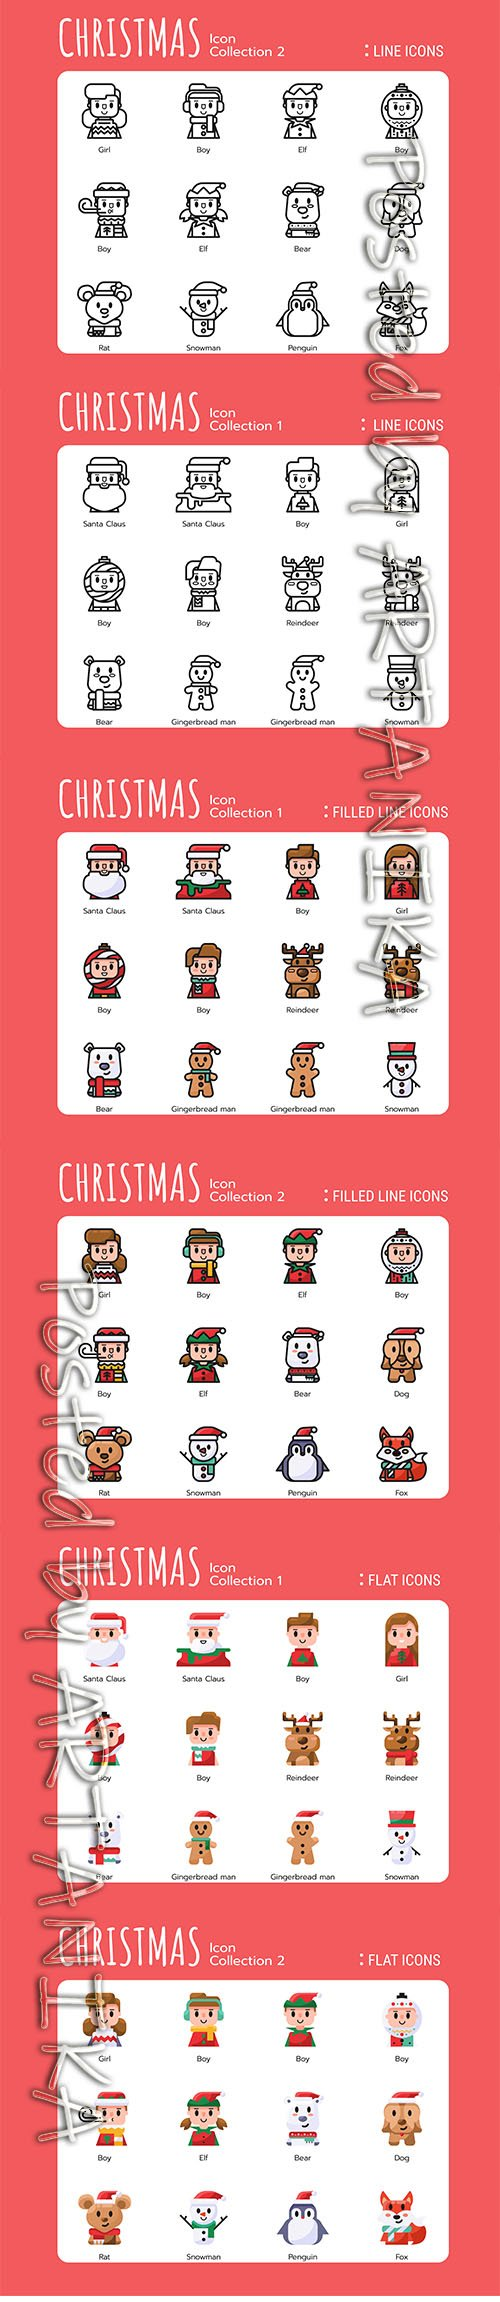 Collections of Christmas Filled Lines Icons and Lines Icons